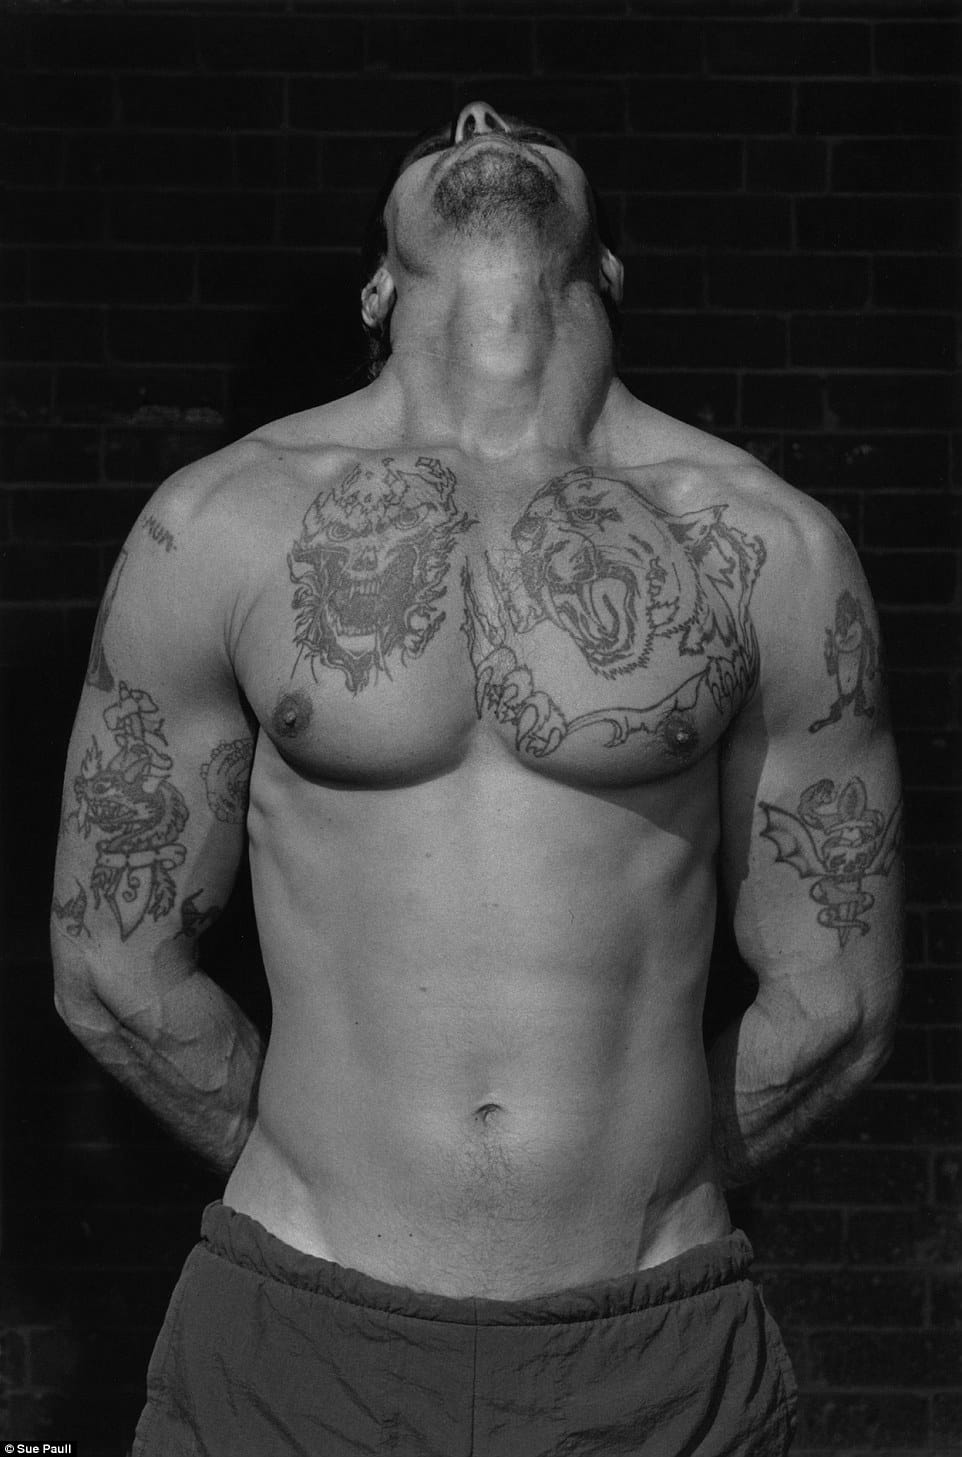 Photographer Captured Tattoos Of Australia's Most Violent Criminals!